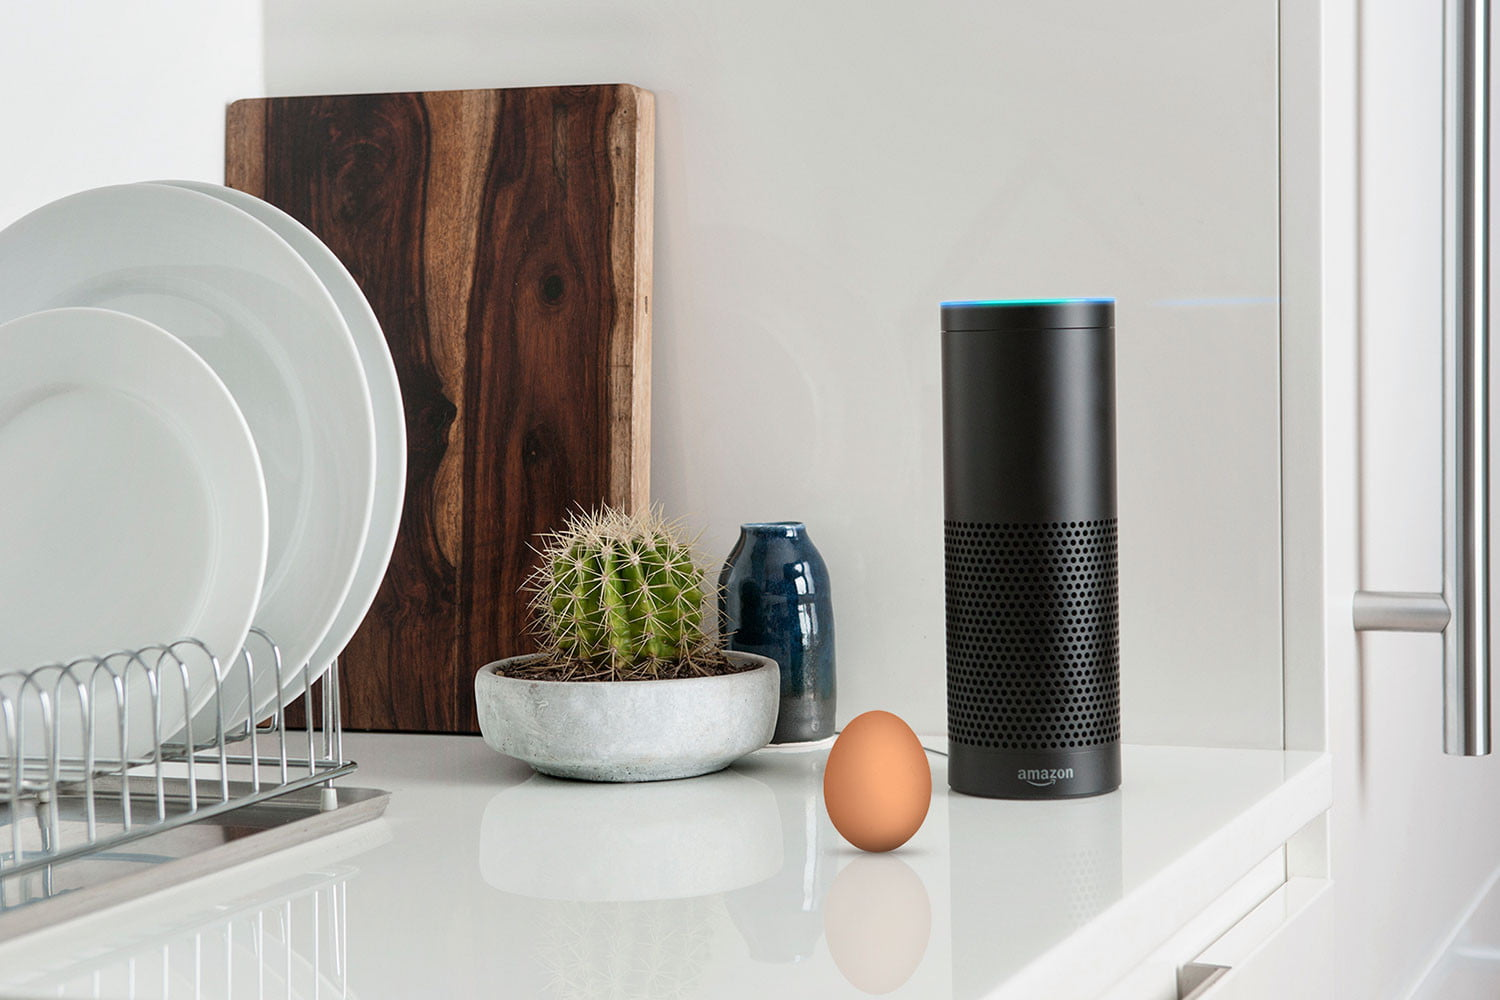 Now You Can Say 'Computer' Instead of 'Alexa' to Wake Your